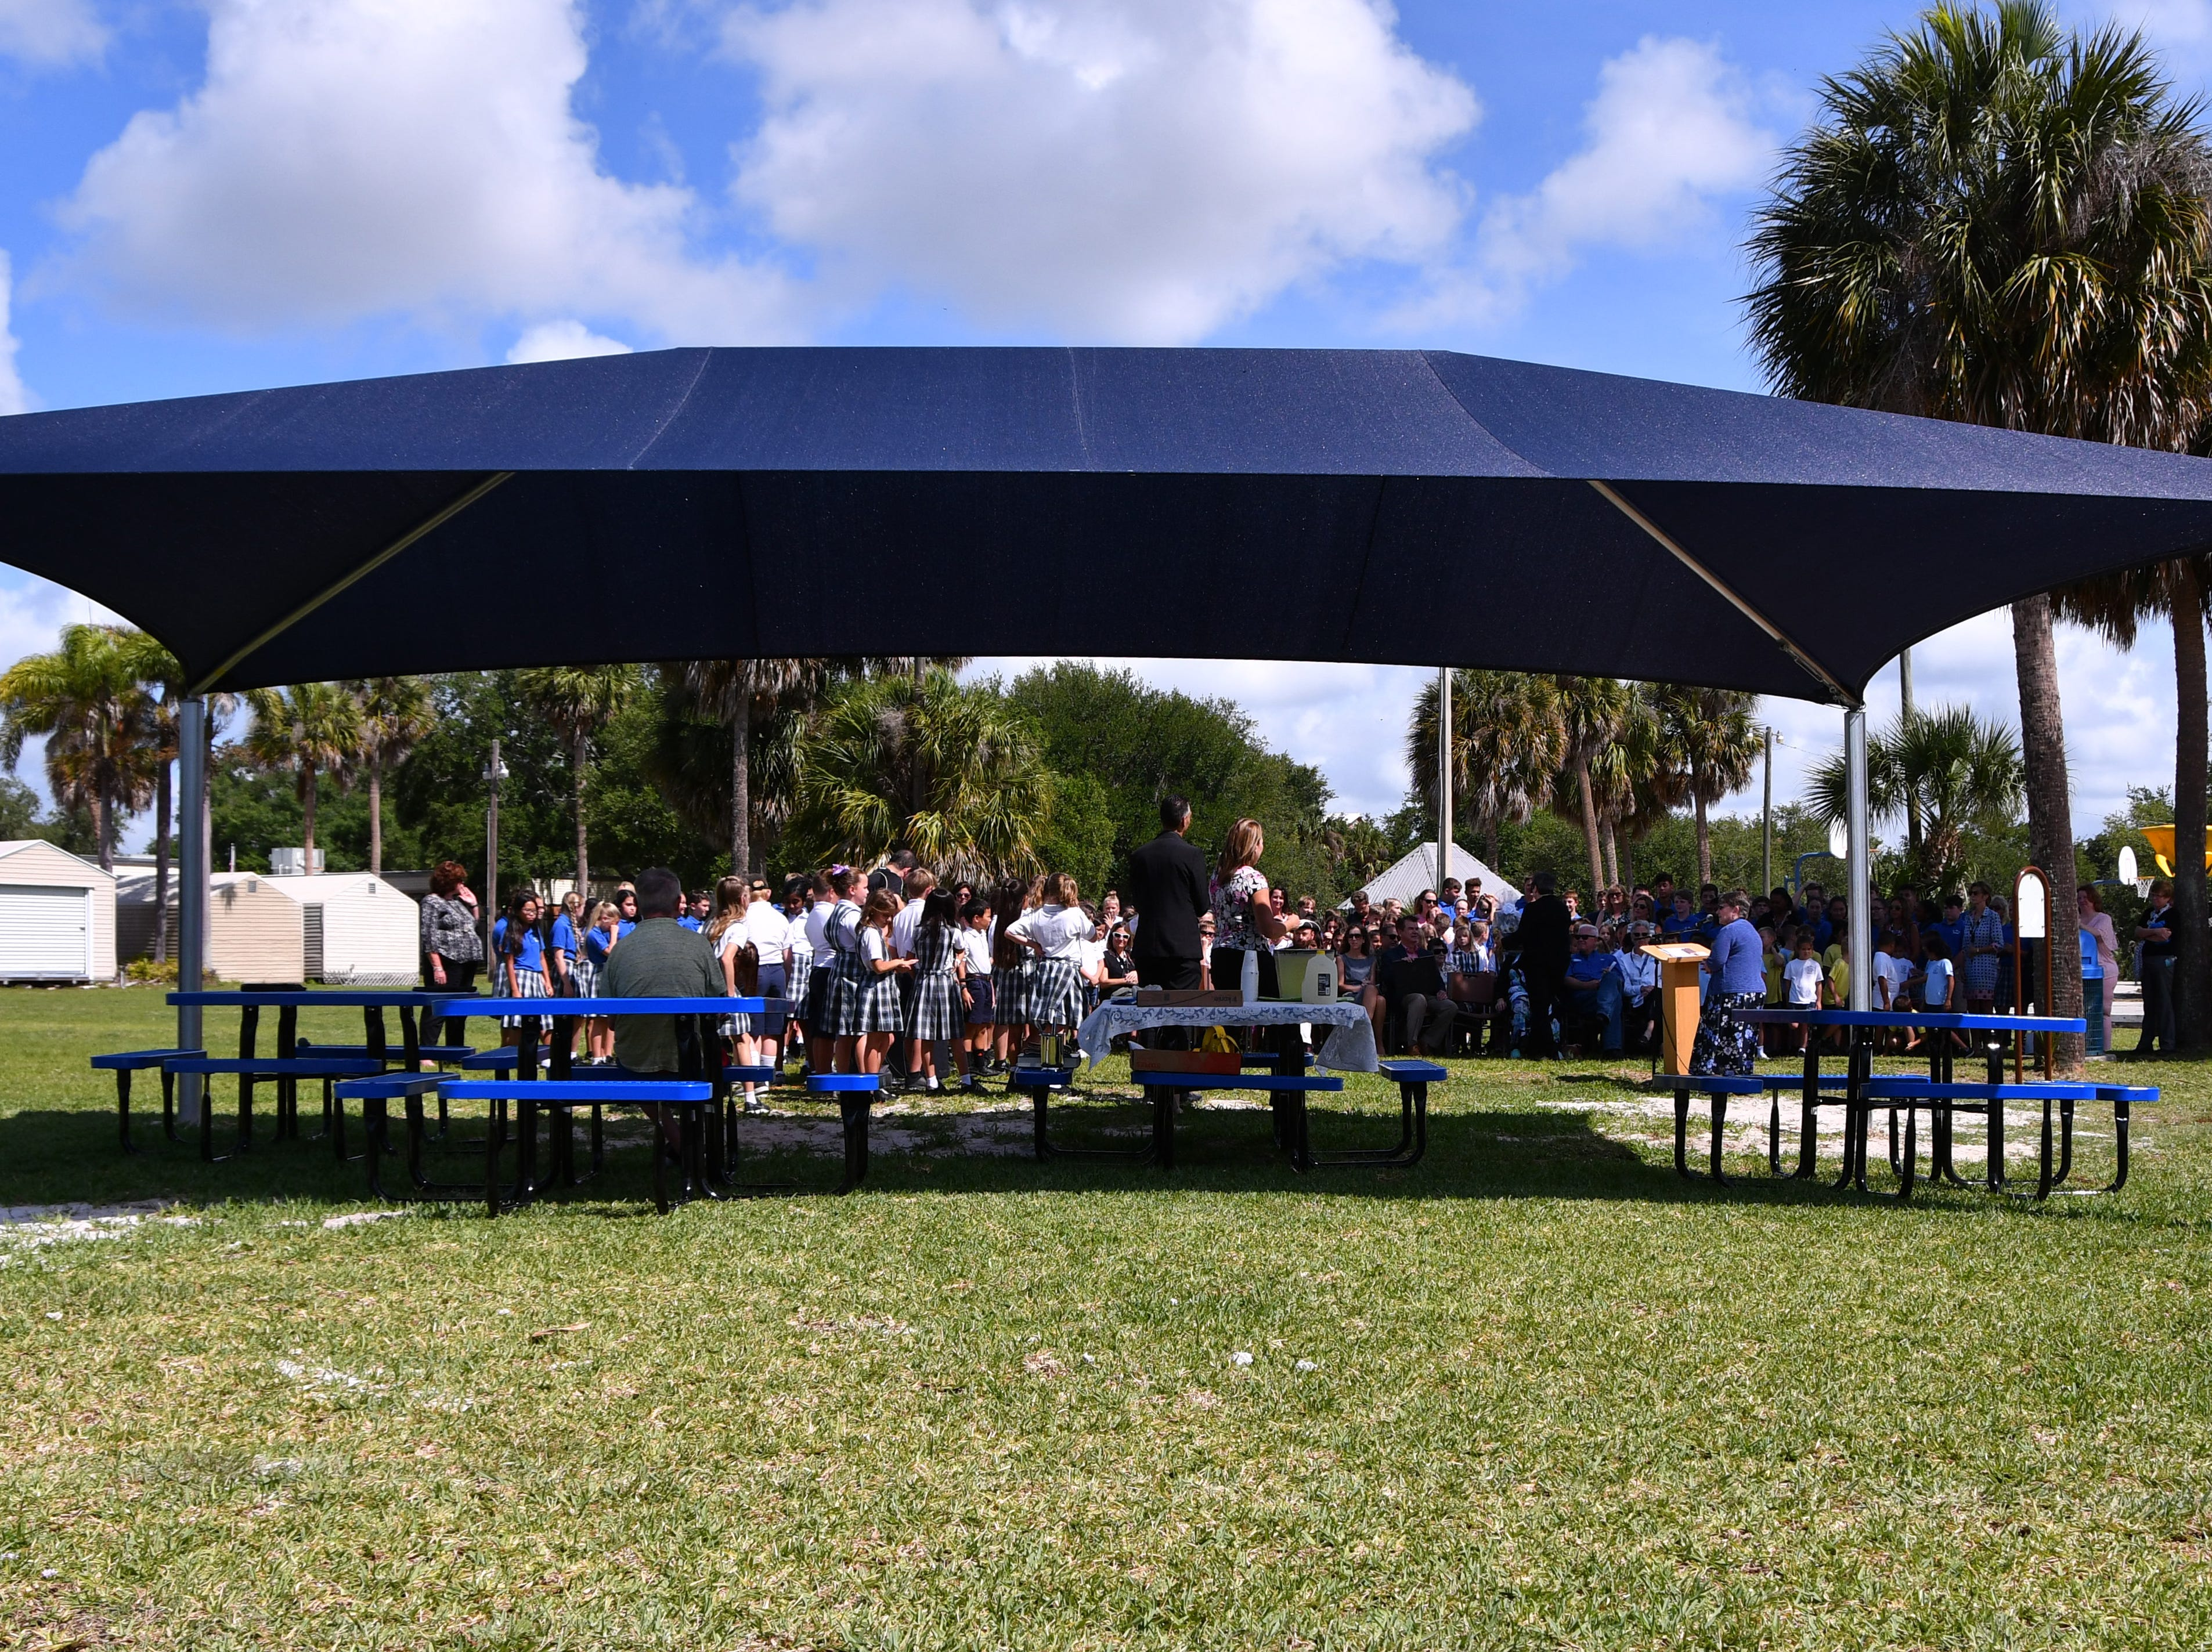 St. Mary Catholic School in Rockledge hosted a dedication ceremony for its newly constructed shade structures Wednesday morning made possible by a grant from the American Academy of Dermatology's Adopt-A-Shade program. Board-certified dermatologist, Francille MacFarland, MD, FAAD, provided a generous donation to the AAD, which completed the funding necessary to build the structure over the school's primary playground and picnic area. The shade will help protect more than 250 children and teachers daily from the sun's harmful ultraviolet rays. Other parishioners, families, doctors and school fund raisers helped cover the cost.